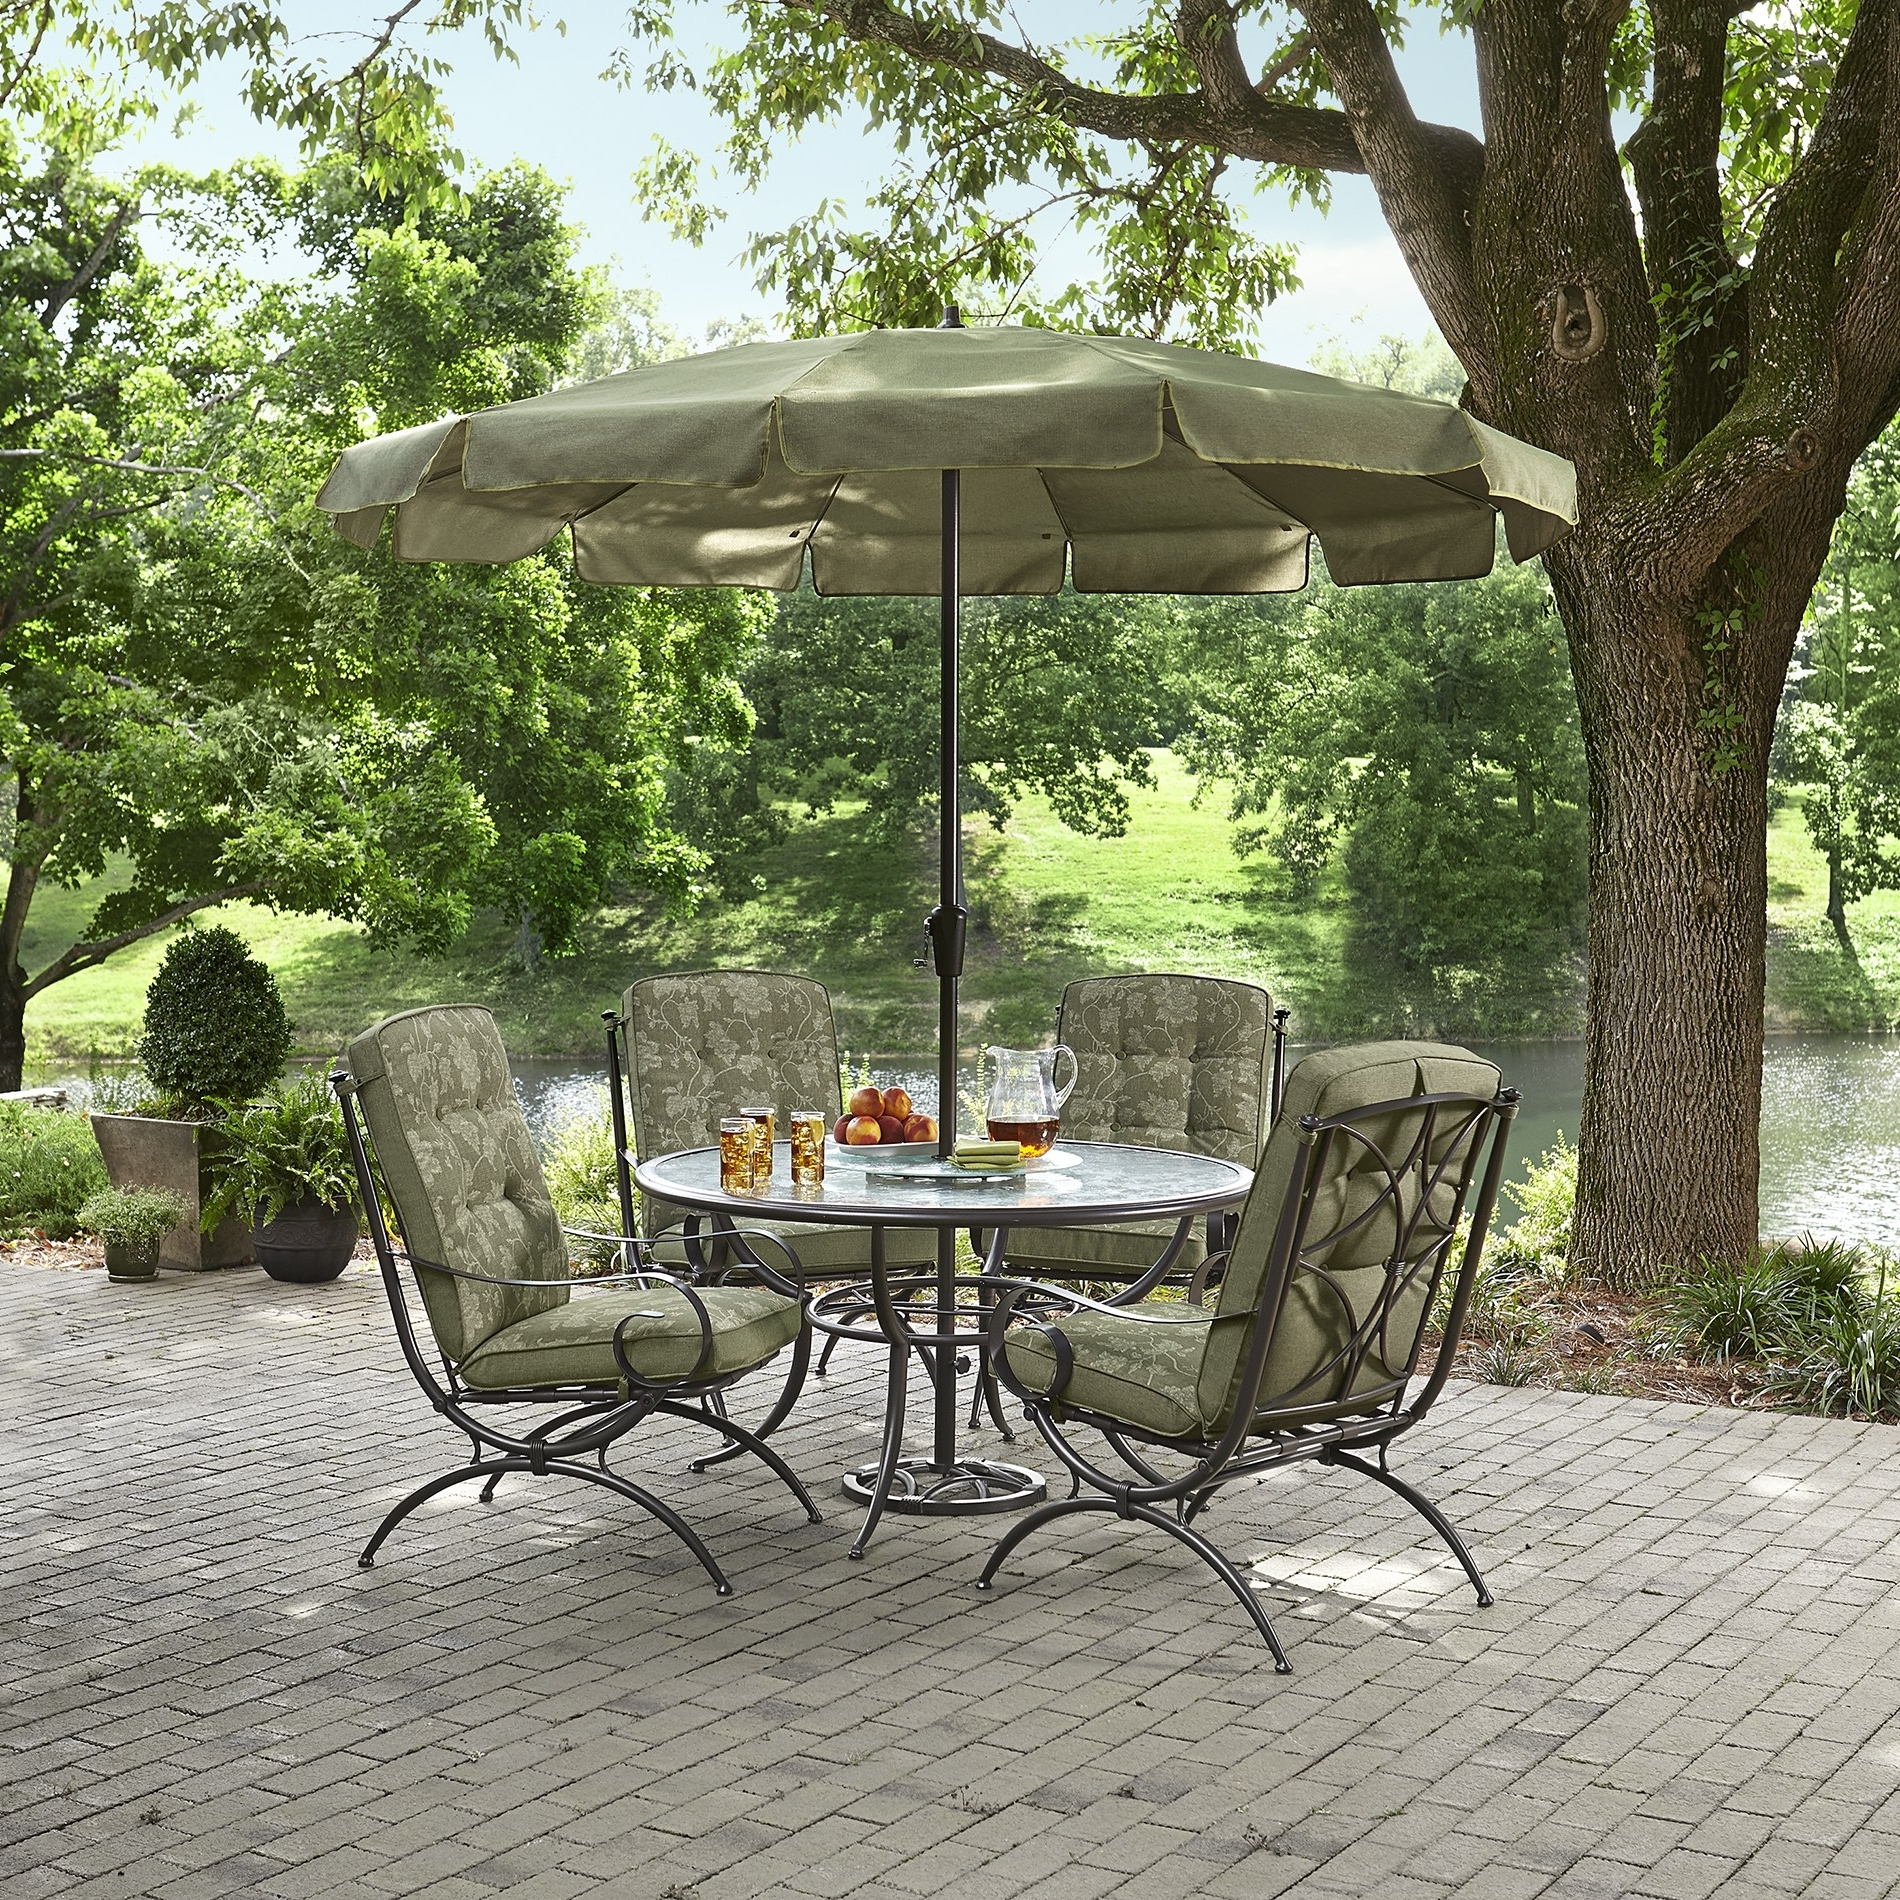 Famous Kmart Patio Umbrellas In Peaceably Cheap Wicker Furniture Kmart Patio Umbrellas Sears Patio (Gallery 4 of 20)